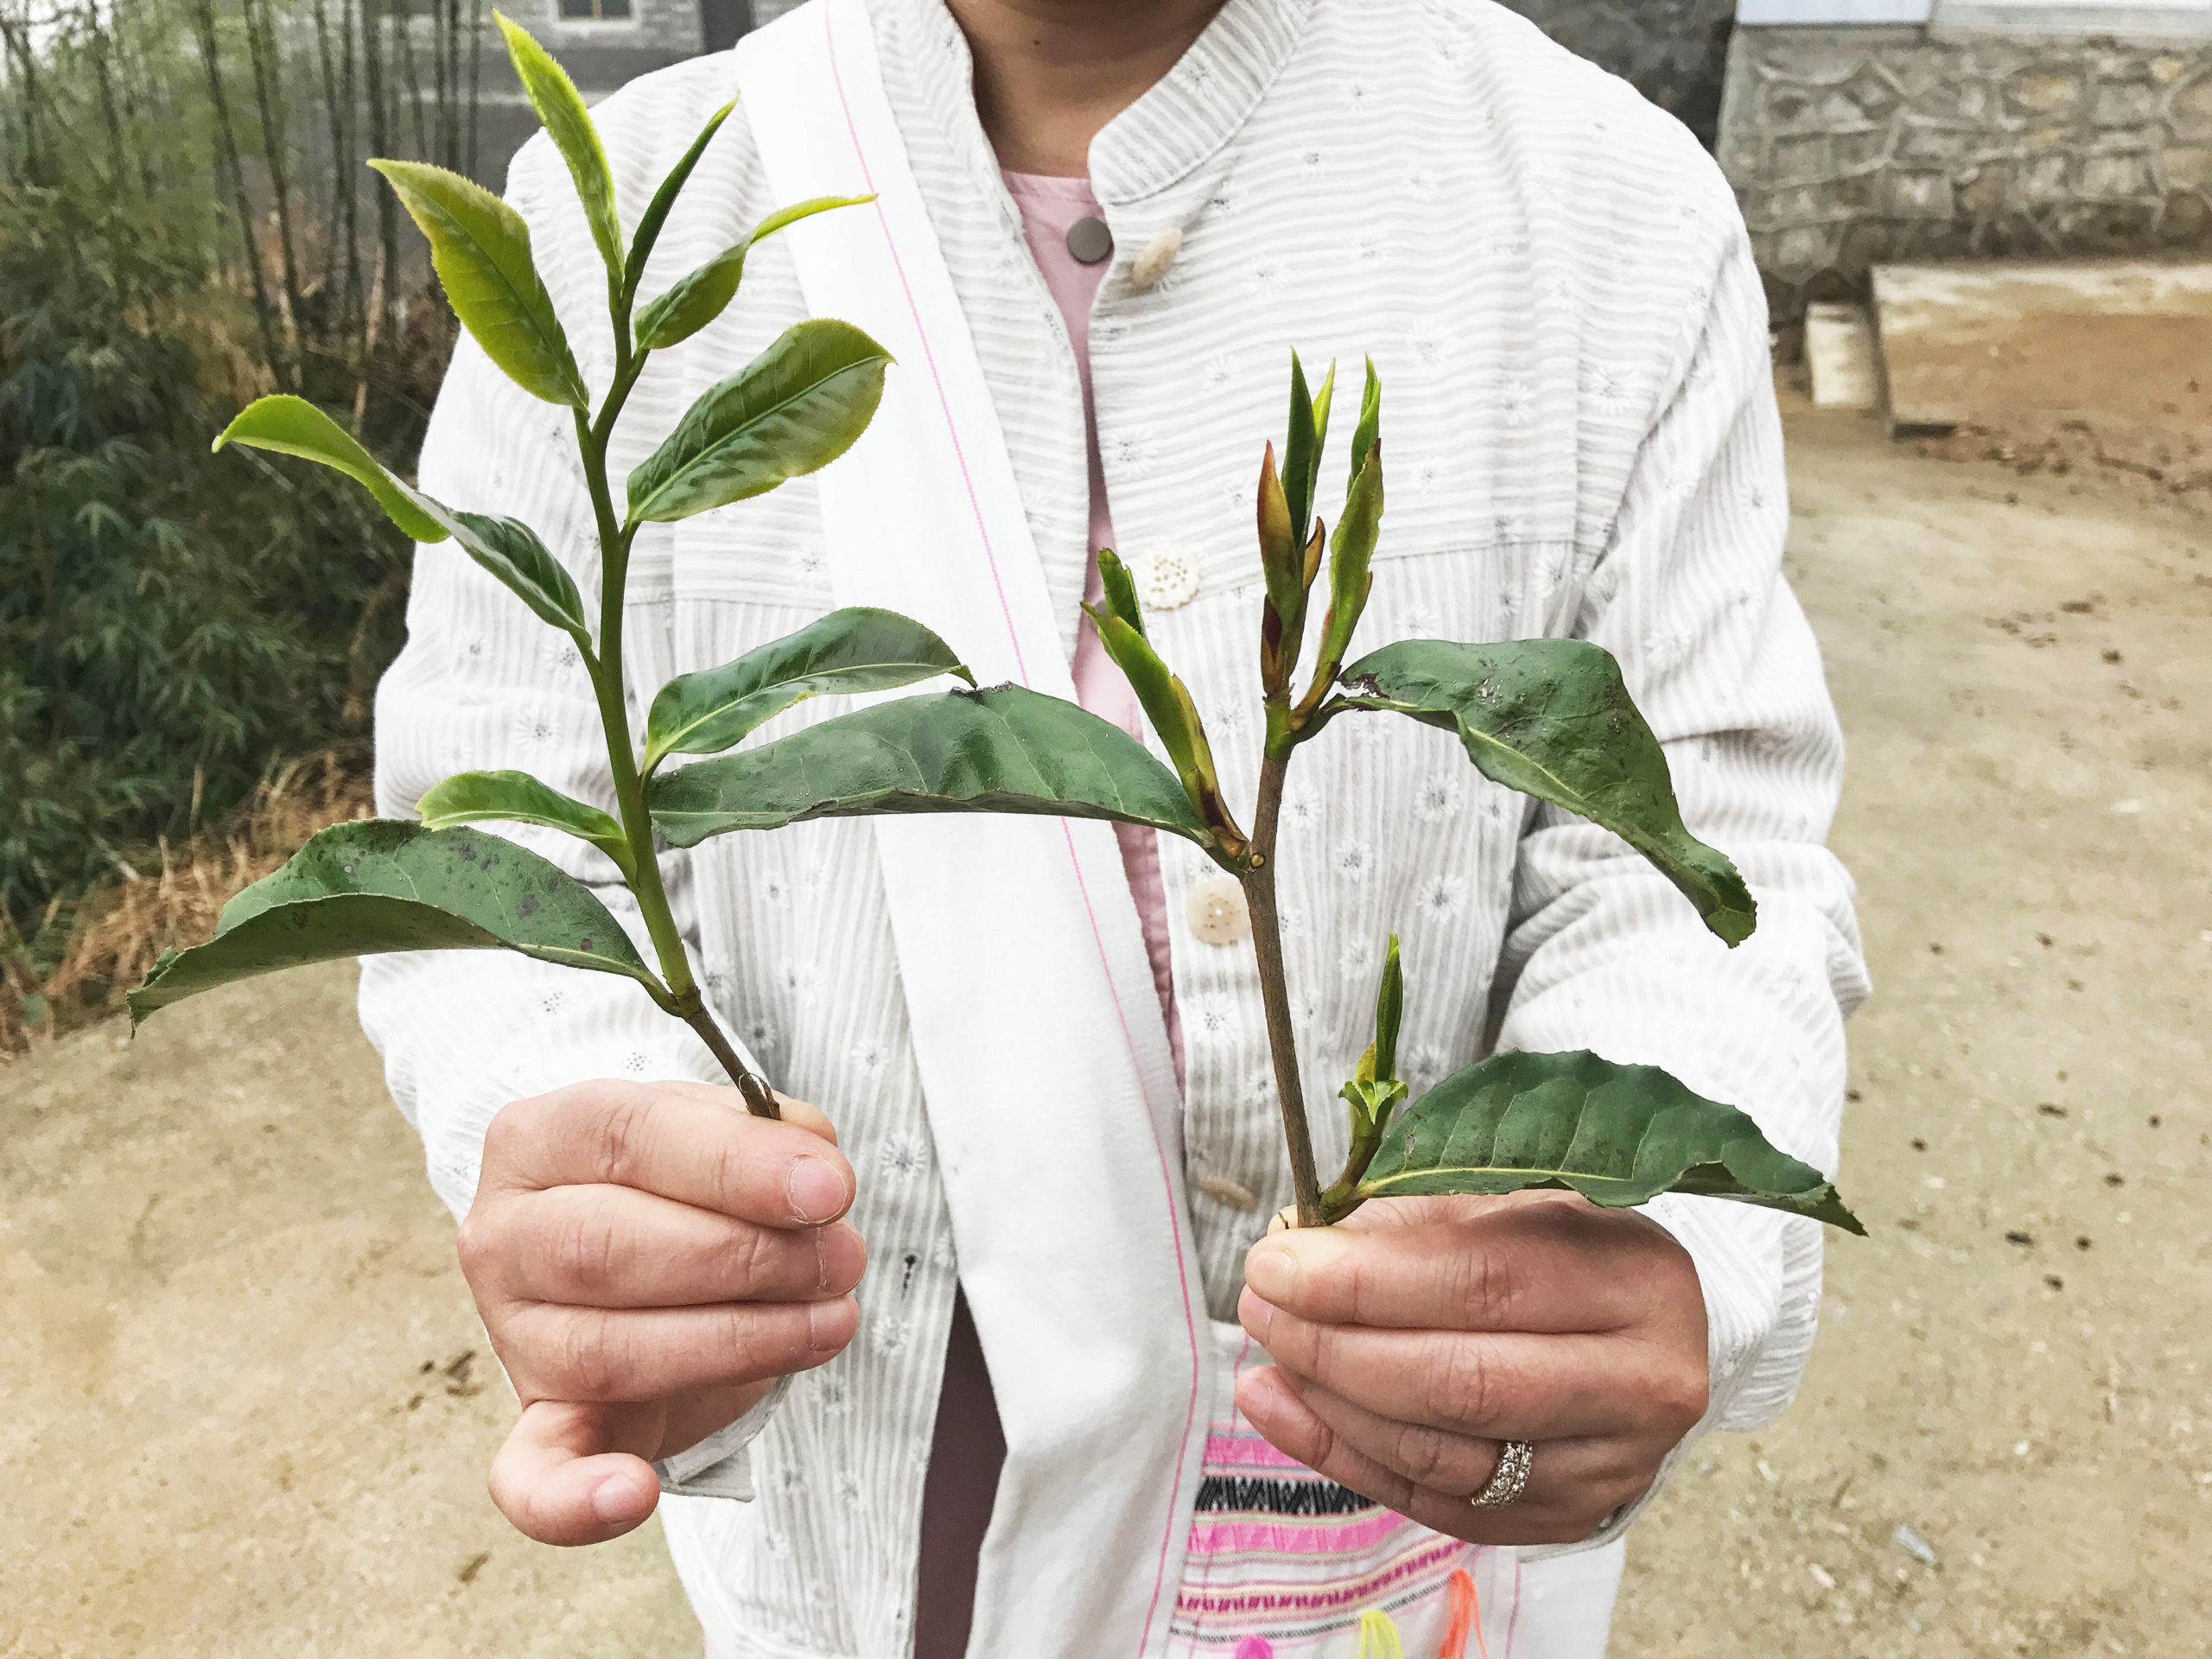 A person holding up two tea branches with young leaves, one with a long sprawling sprig with spread leaves and the other with small compact new growth.